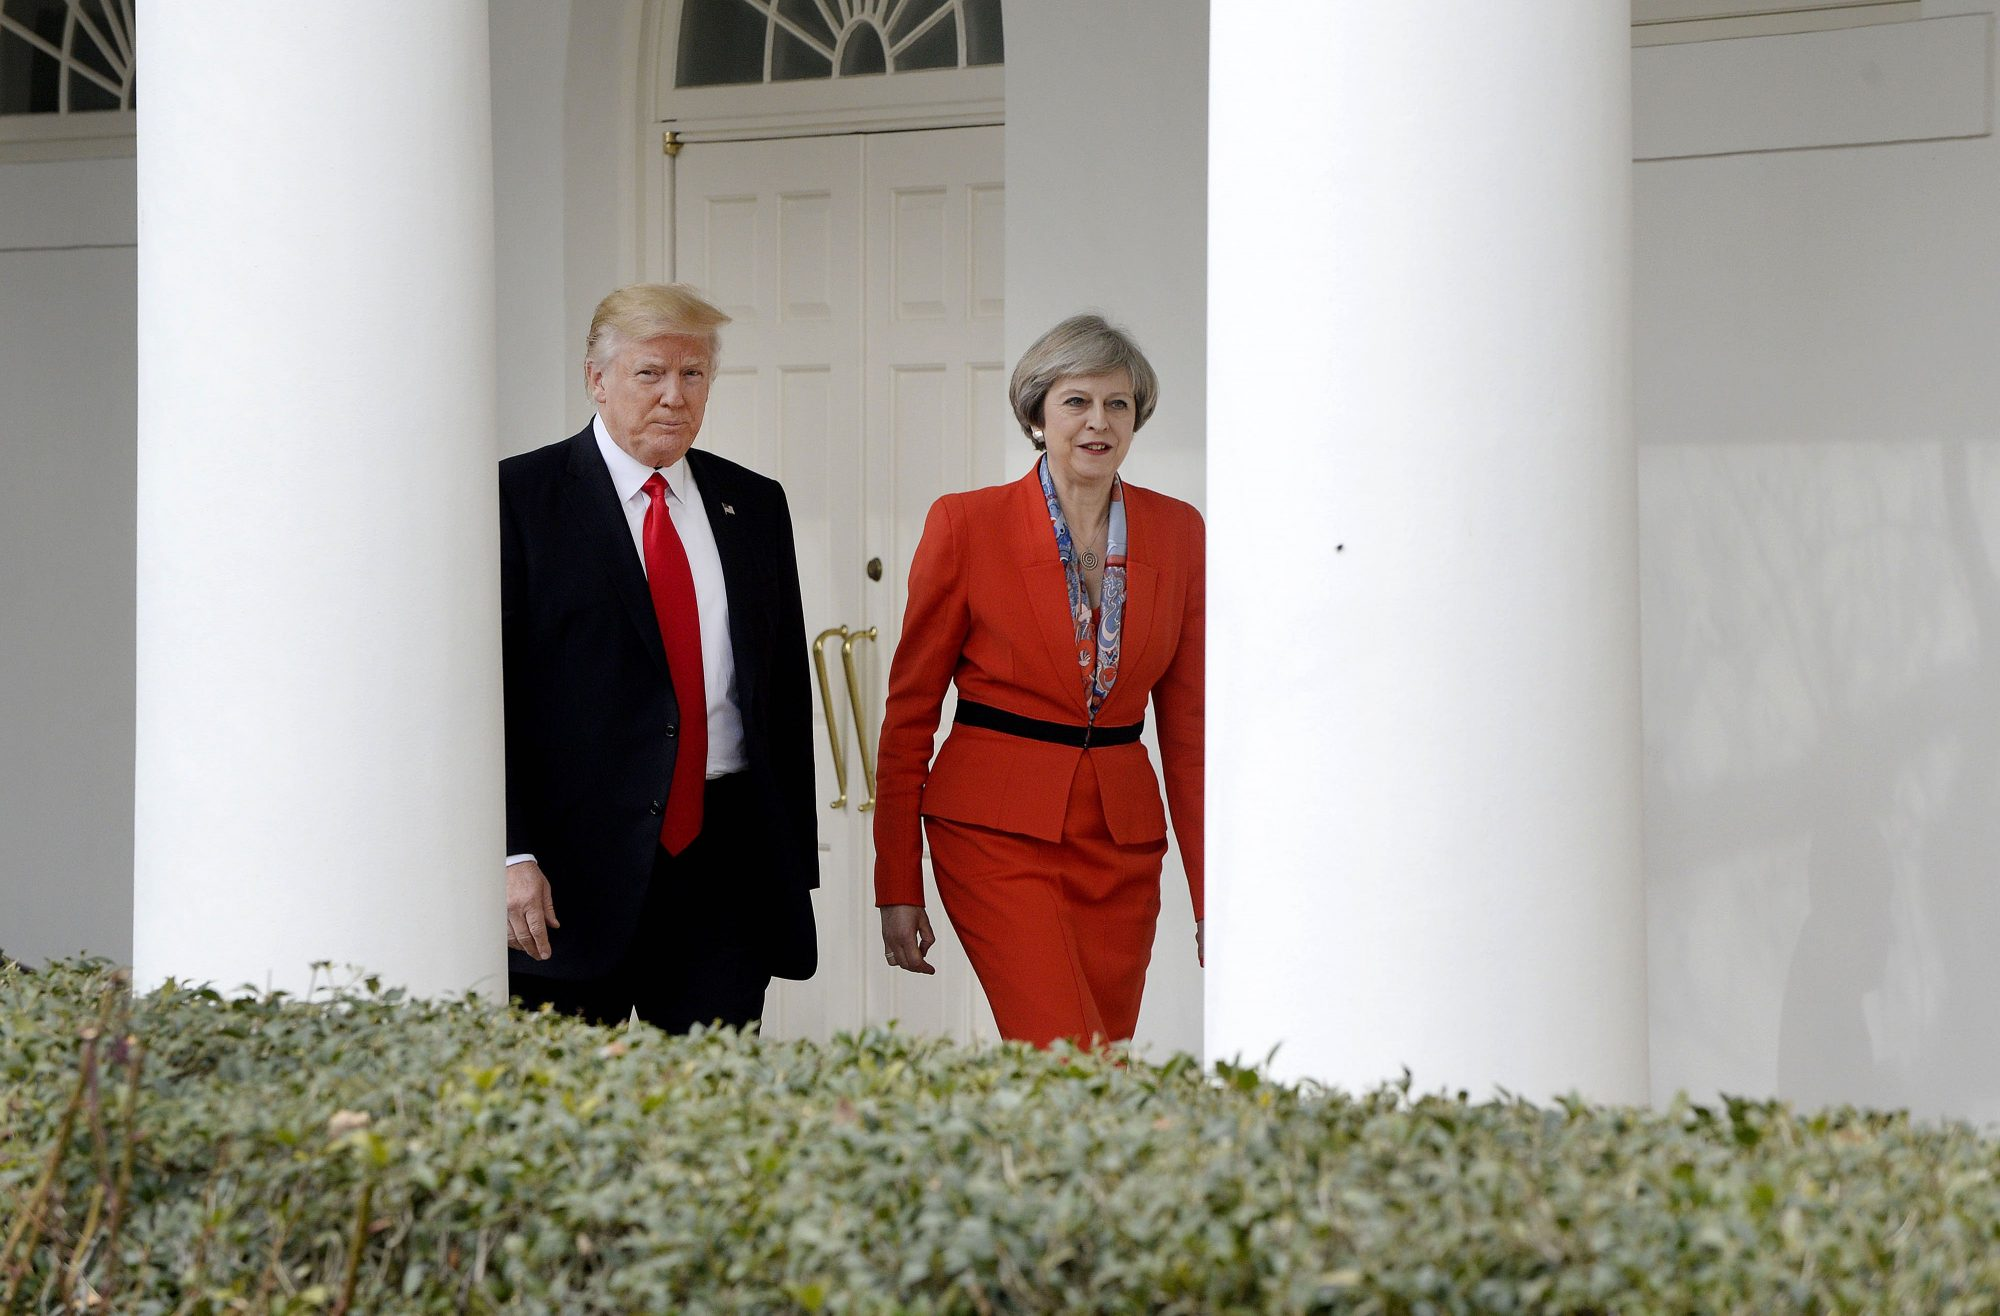 President Trumps Holds Bilateral Meeting With UK Prime Minister Theresa May In Oval Office